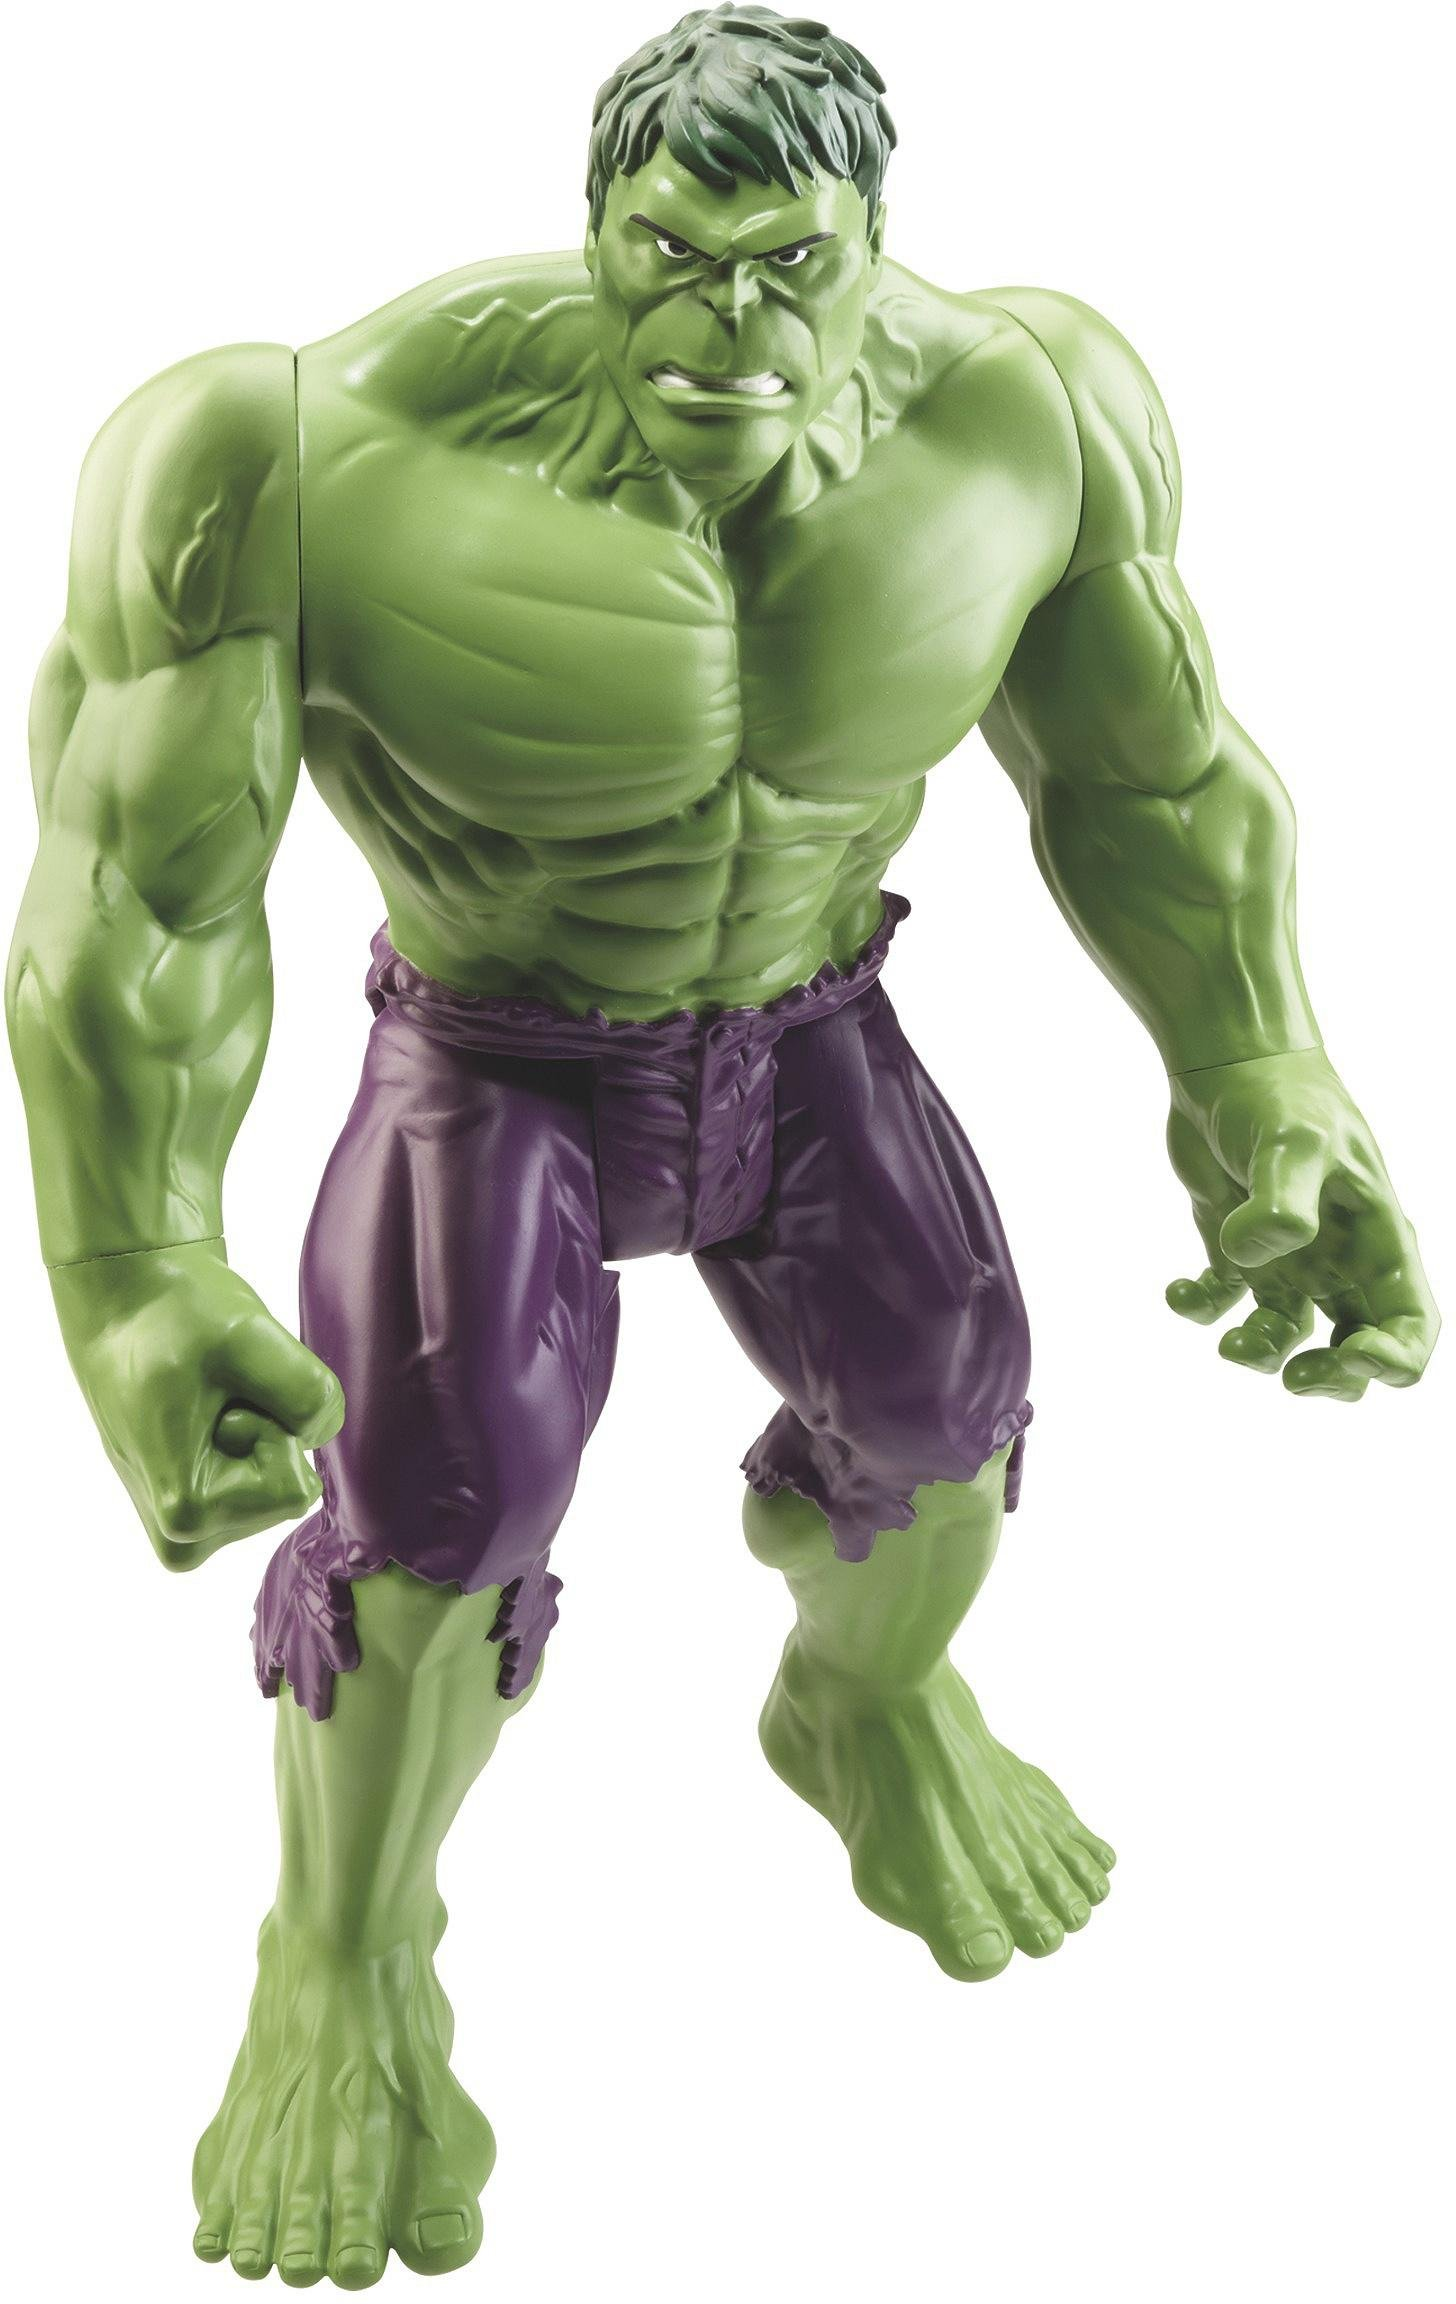 Avengers Titan Hero Series Action Figure Hulk